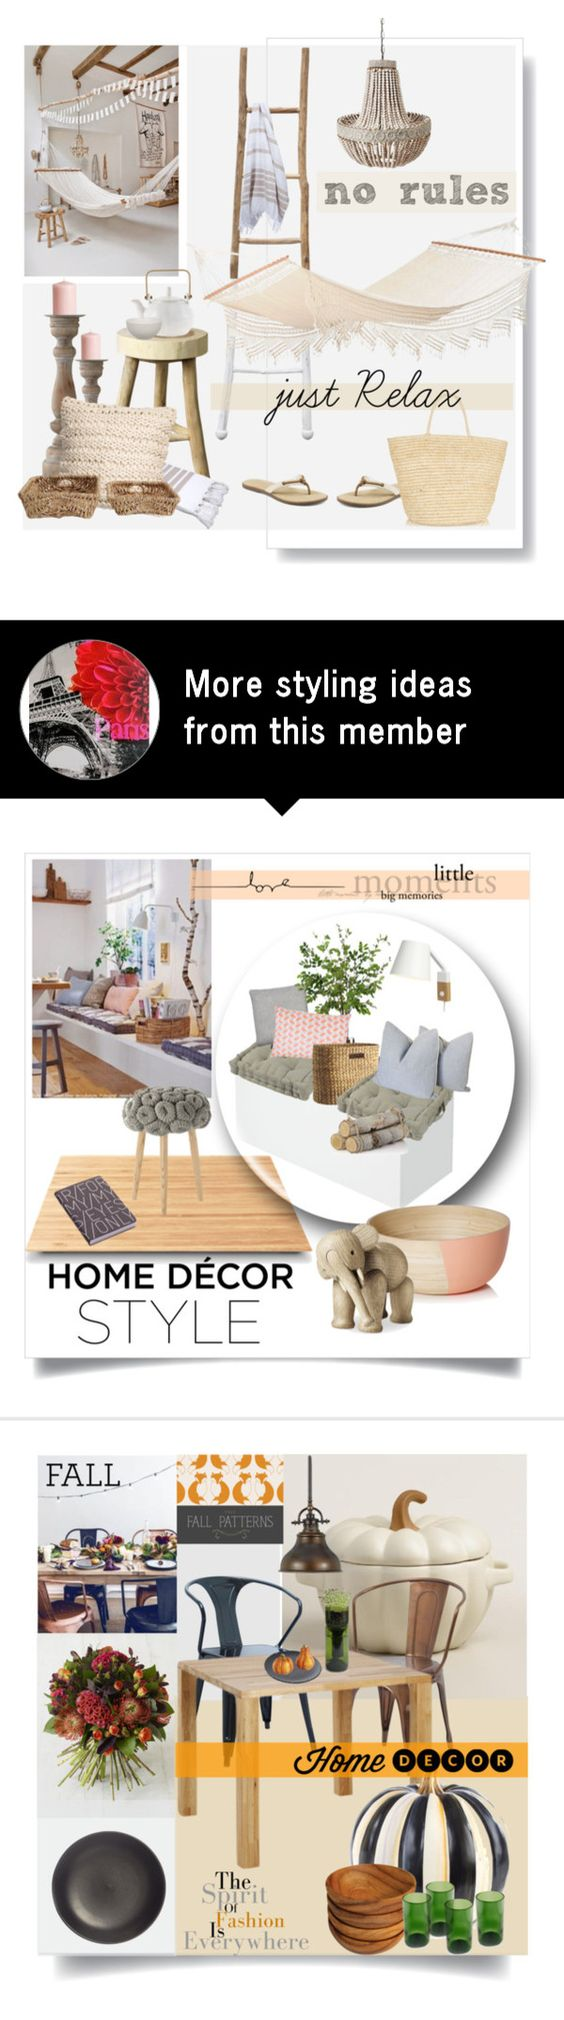 """""""Relax corner"""" by fishetta on Polyvore featuring interior, interiors, interior design, home, home decor, interior decorating, Dot & Bo, Amazonas, Jamie Young and Bloomingville"""